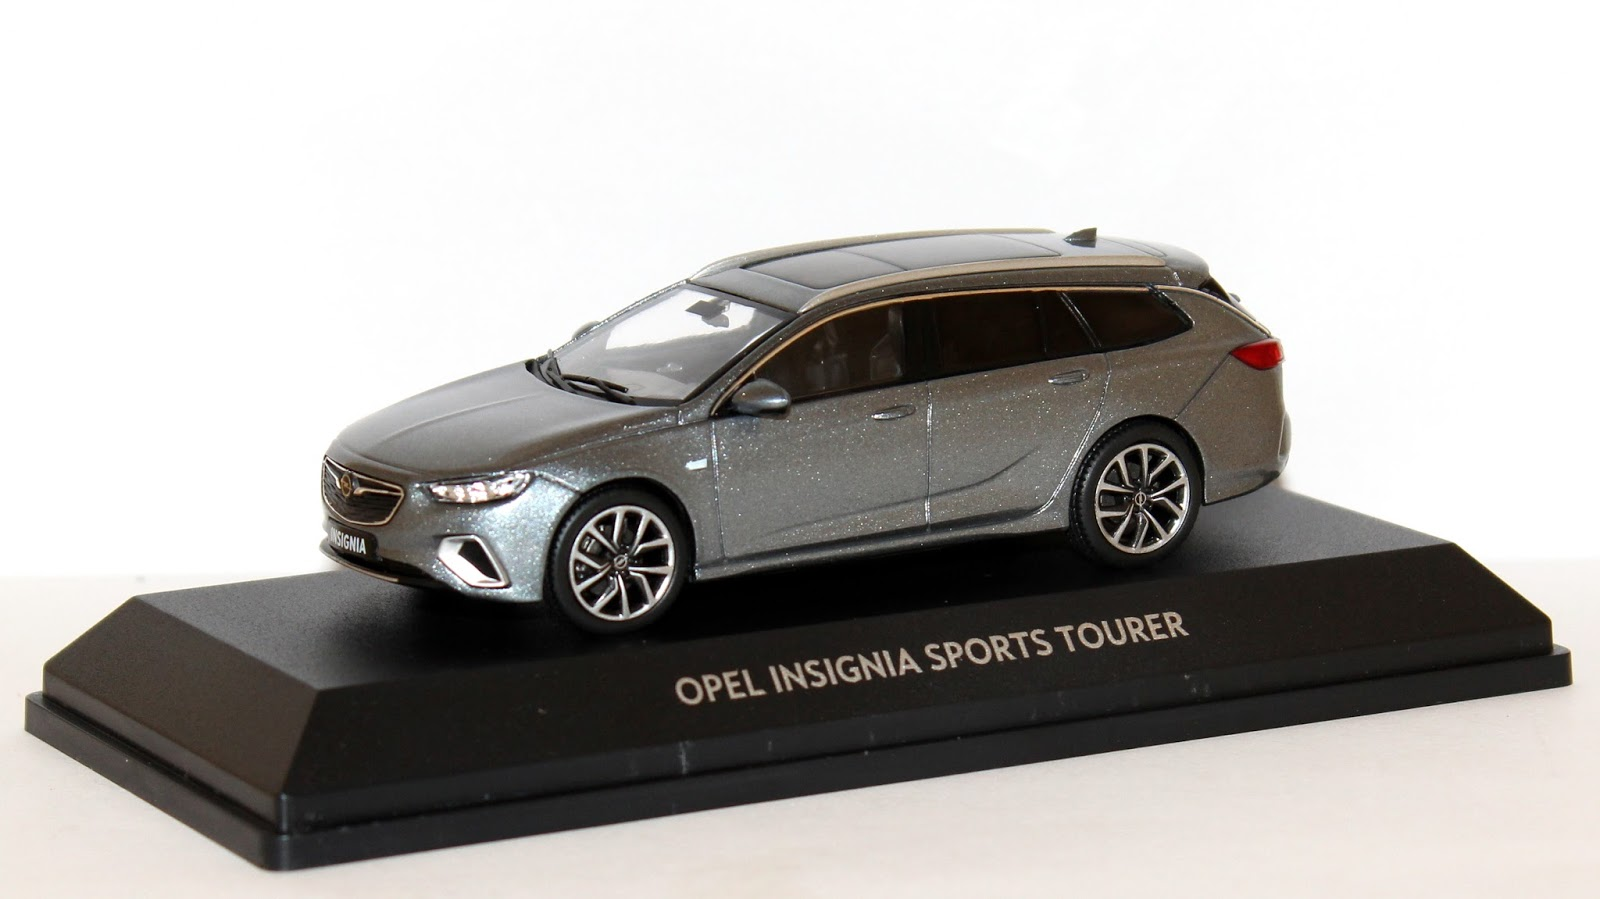 miniaturas opel opel insignia b sports tourer 2017. Black Bedroom Furniture Sets. Home Design Ideas